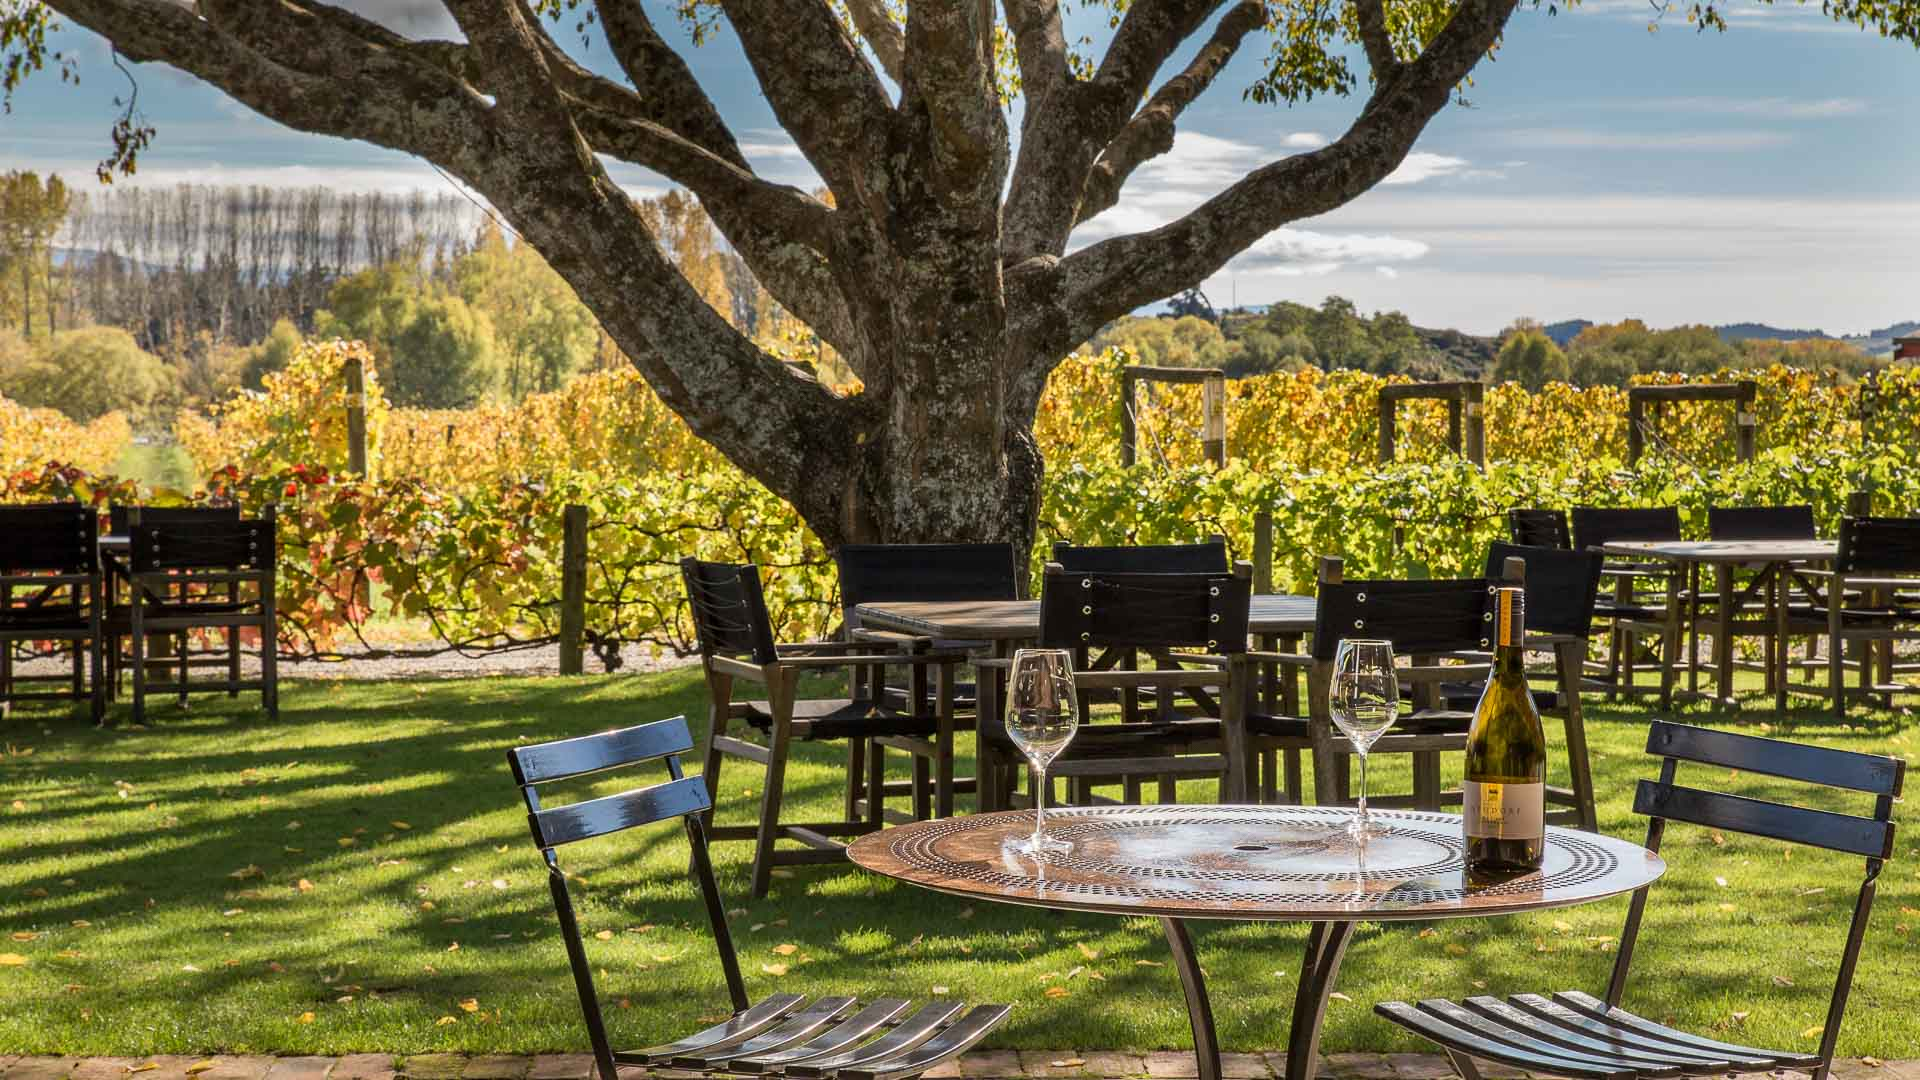 Gardens at Neudorf Vineyard, Nelson, New Zealand